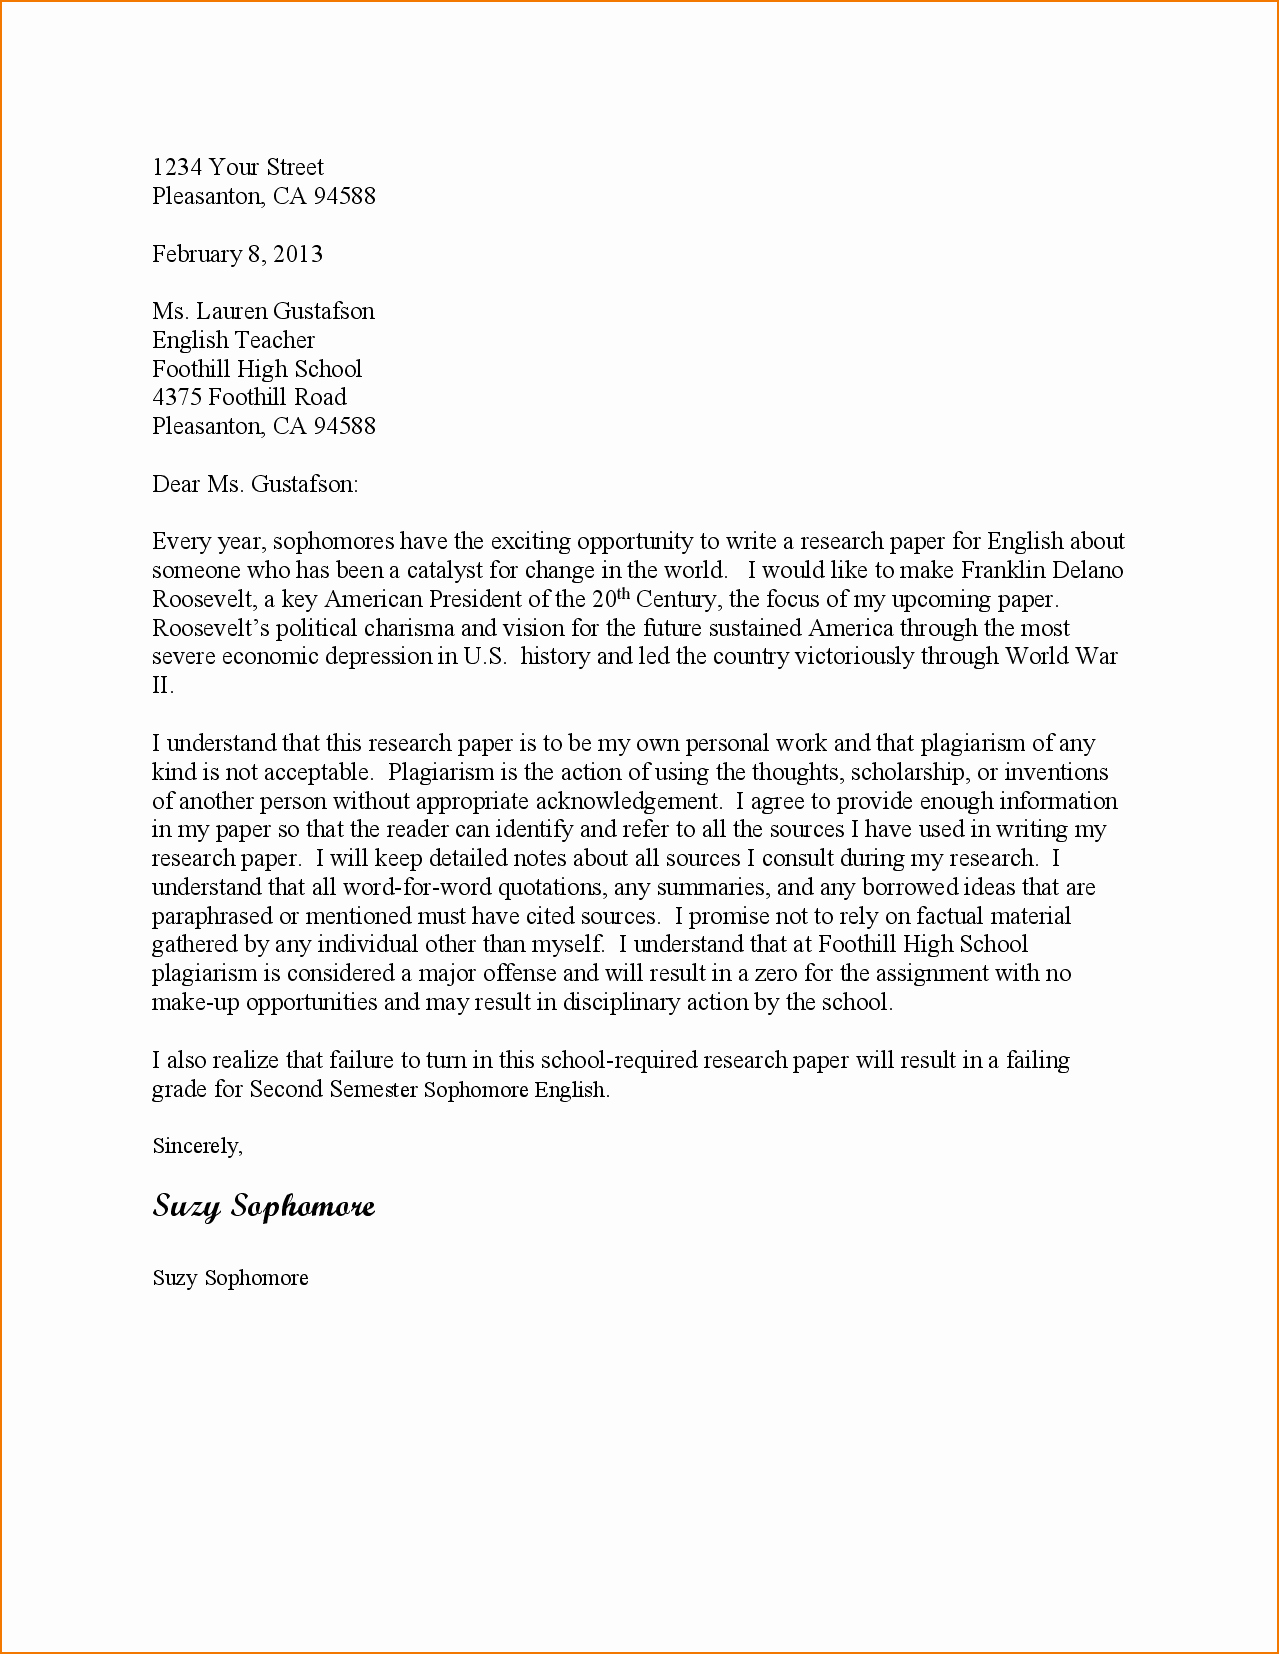 Sample Letter Of Collaboration Proposal New 4 Business Proposal Letter Sample